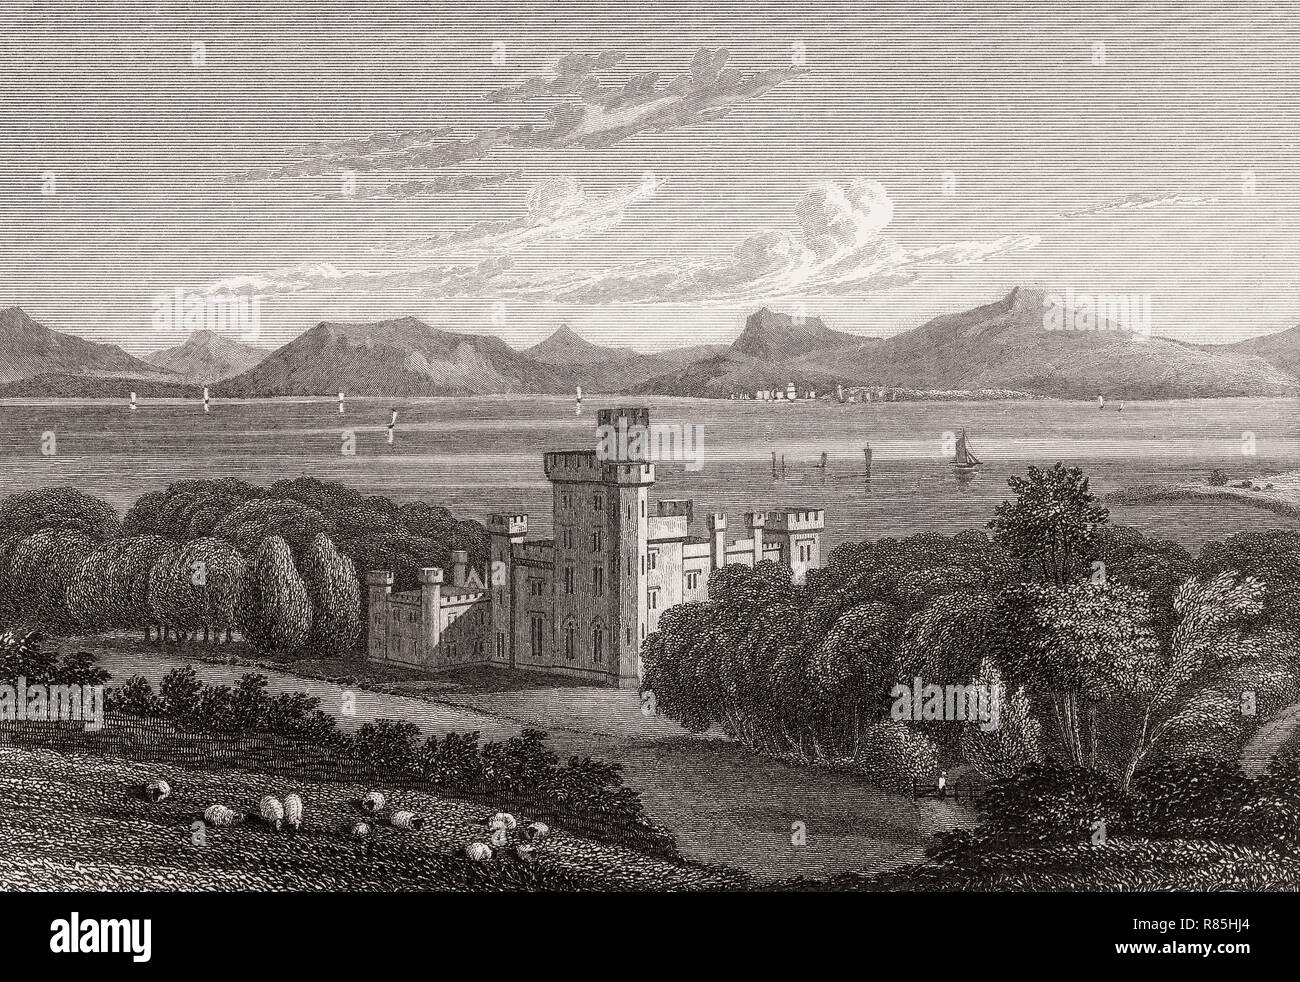 Armadale Castle, Scotland, 19th century, from Modern Athens by Th. H. Shepherd - Stock Image